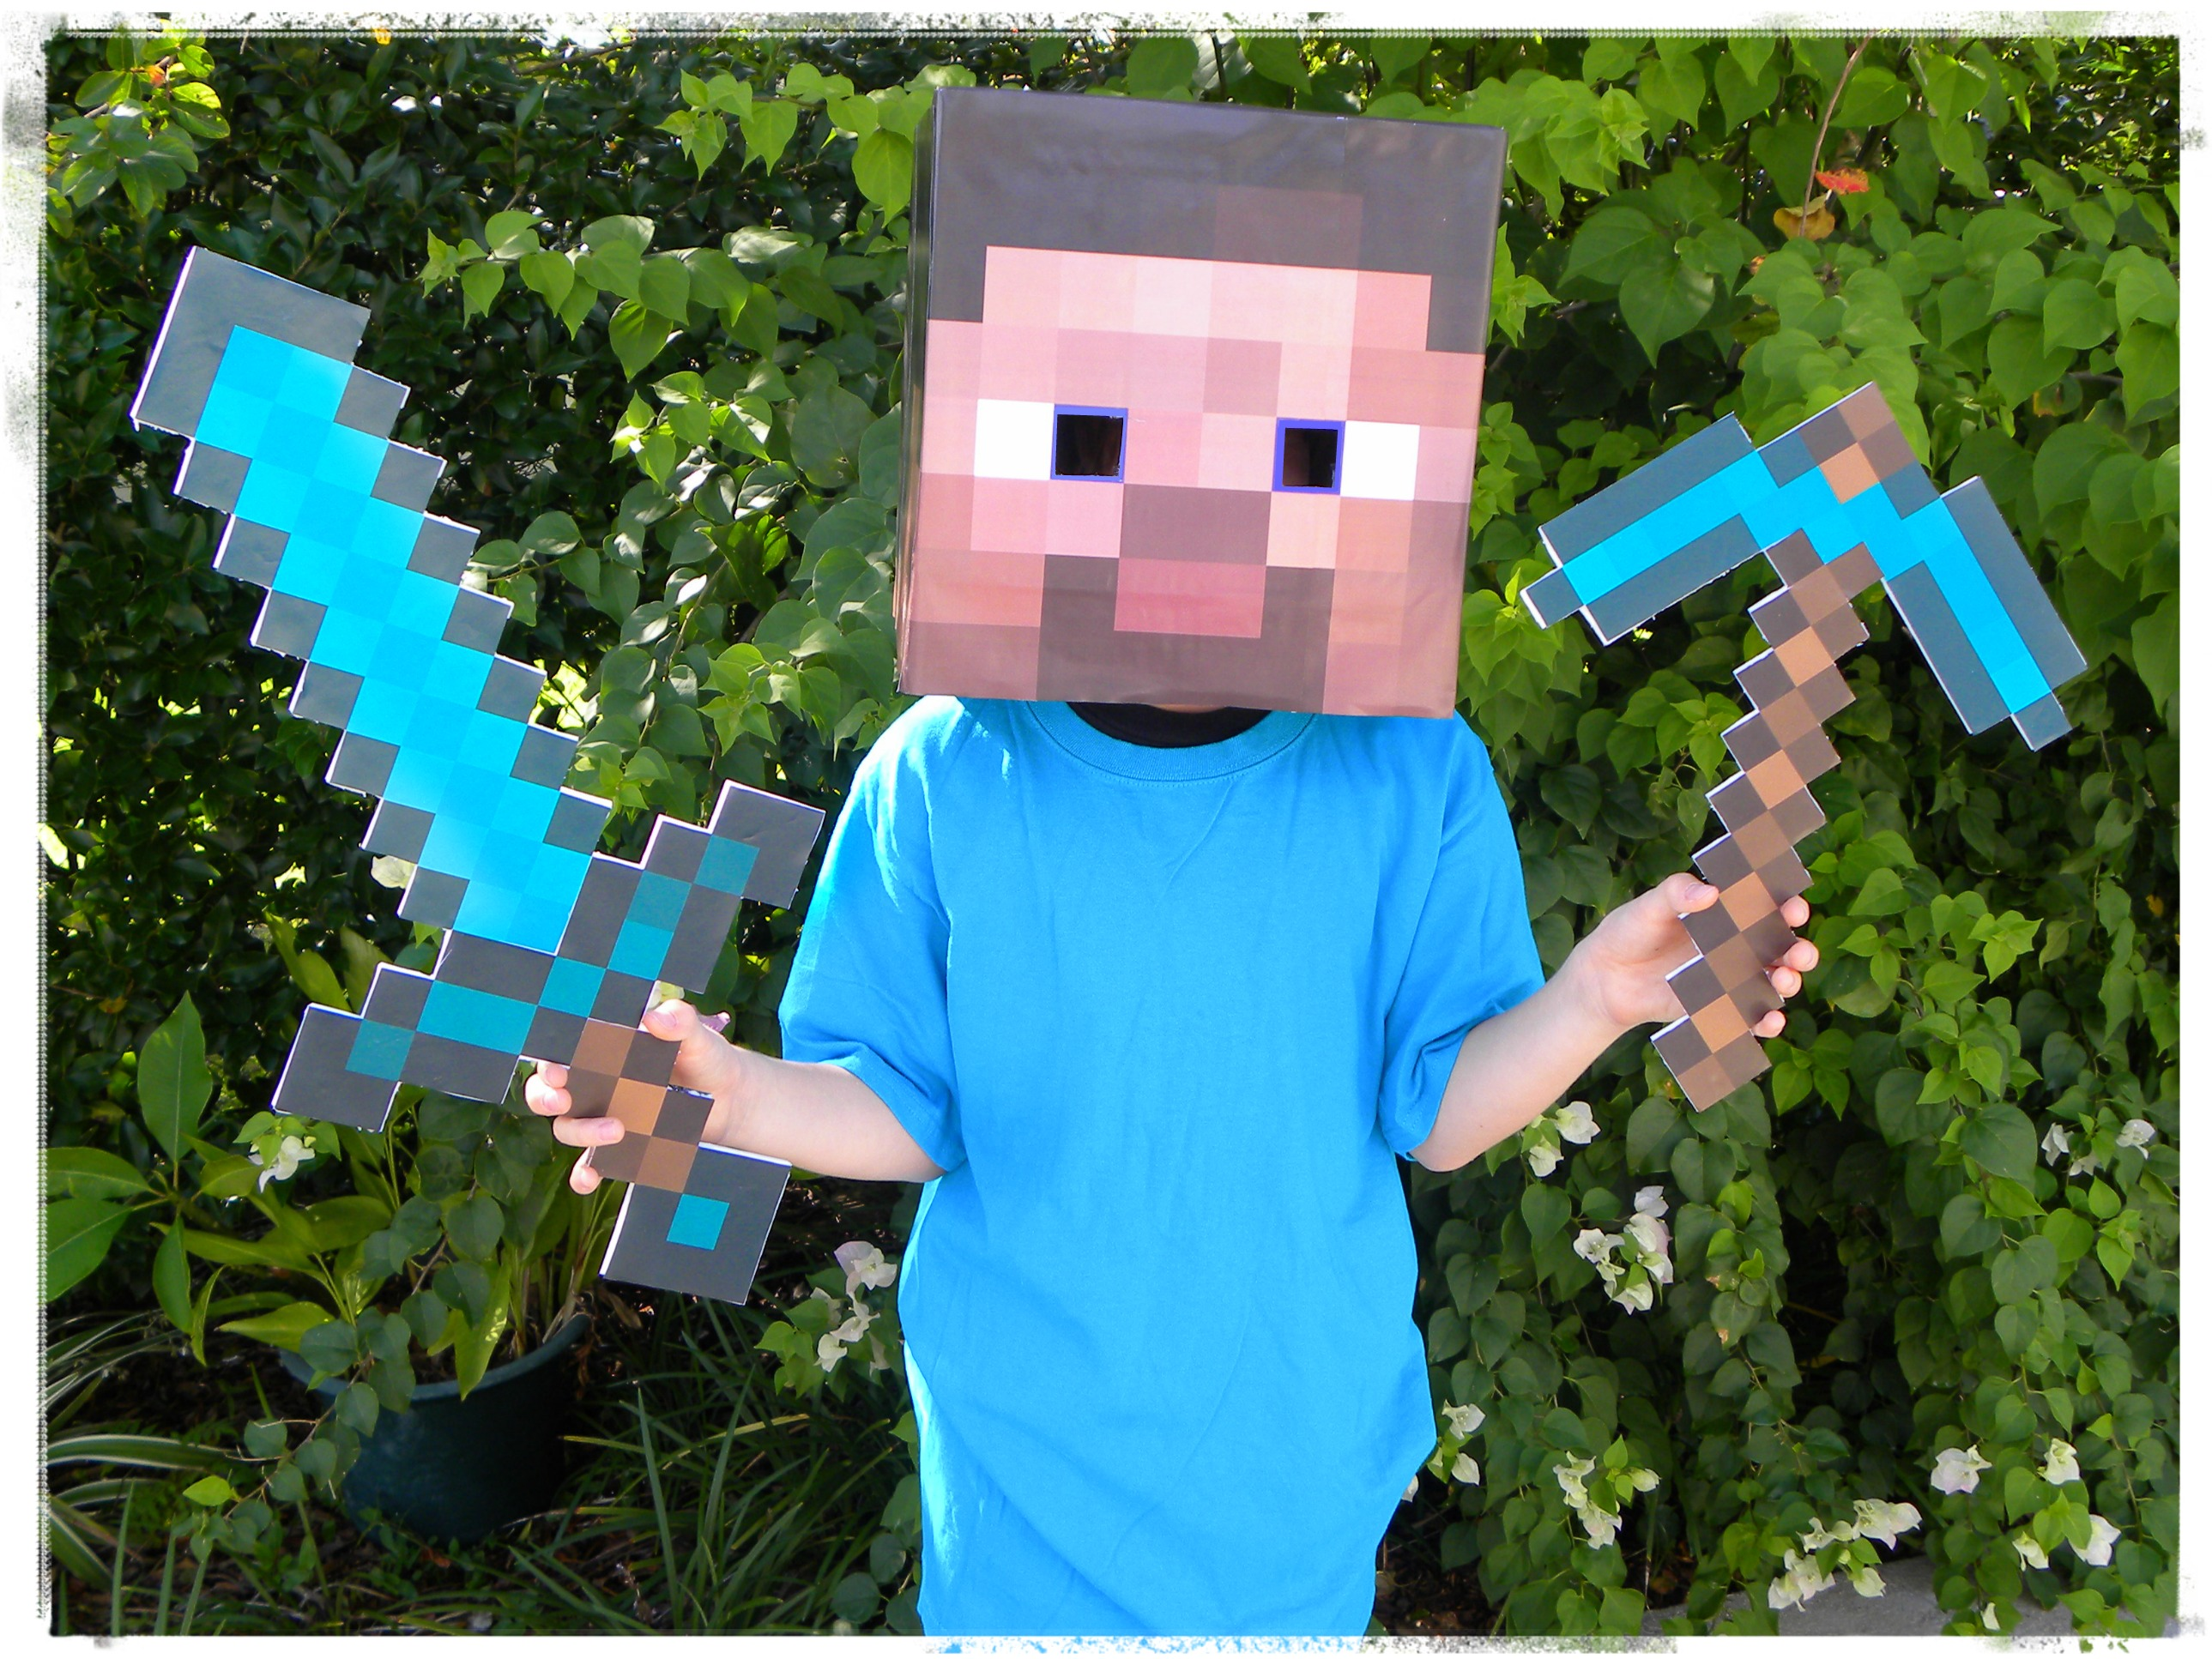 How to make a minecraft steve costume for less than 10 how to make a minecraft steve costume for cheap homemade minecraft costume solutioingenieria